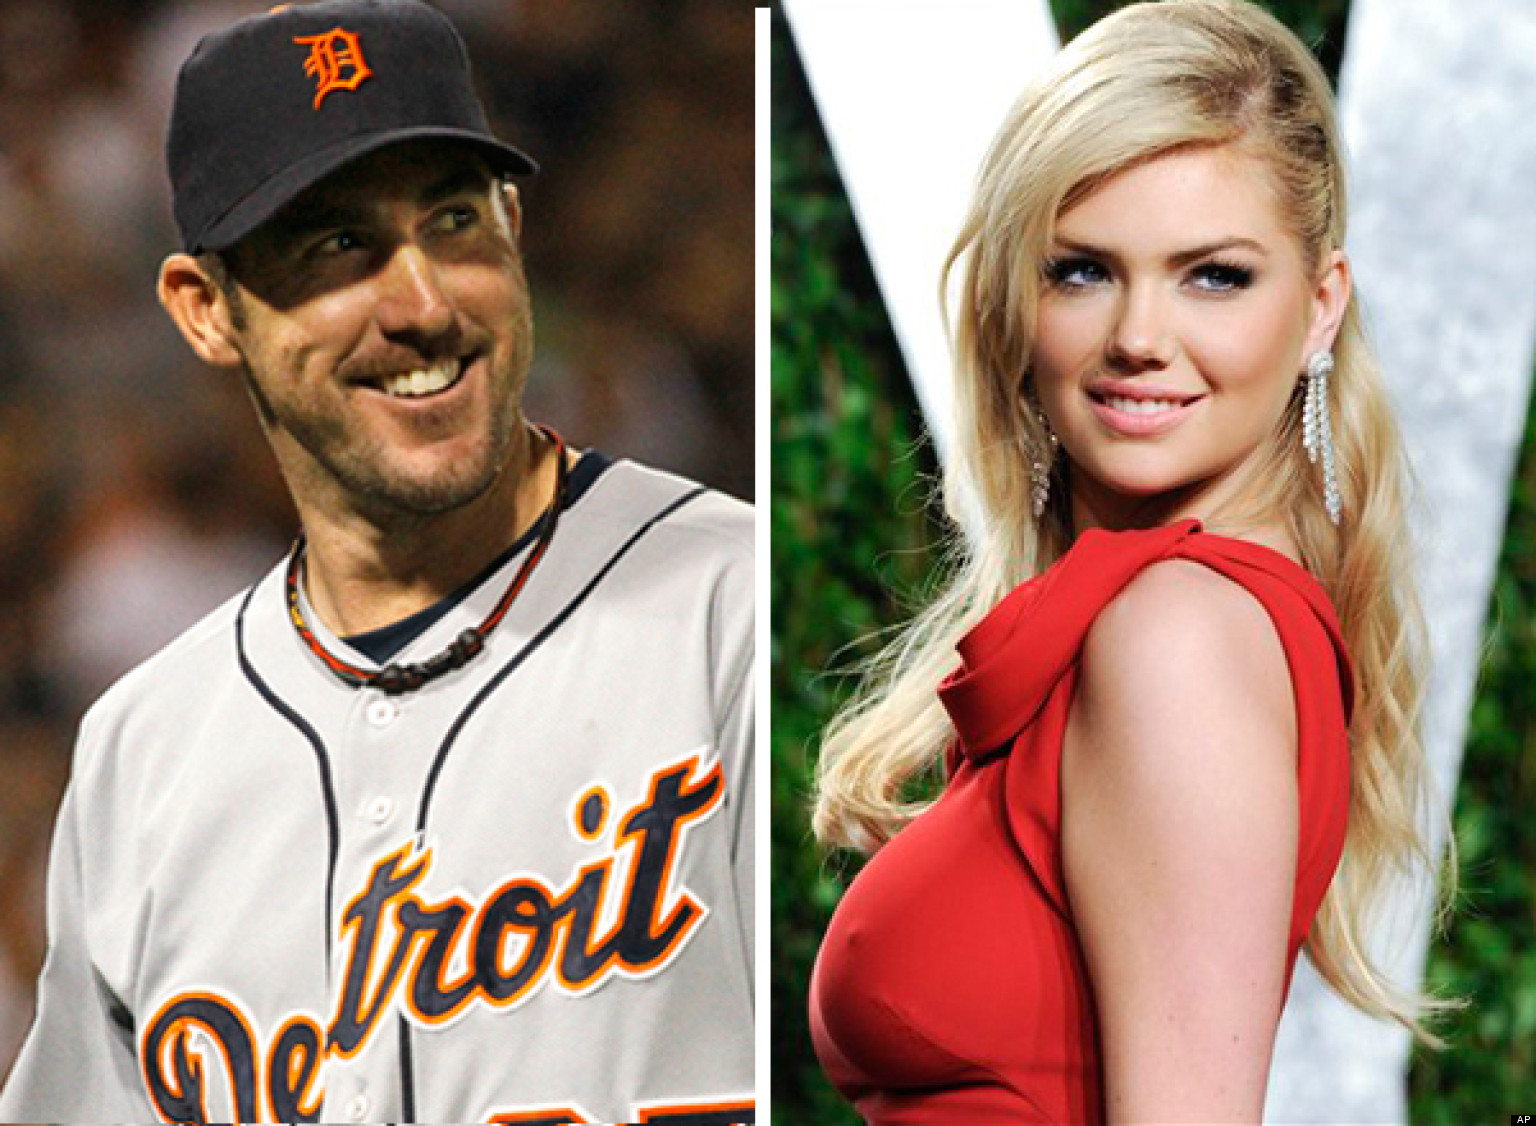 baseball fans dating site This first post will recount the history of baseball's exemption, dating back to its while many fans are quick to dismiss the baseball exemption as being.